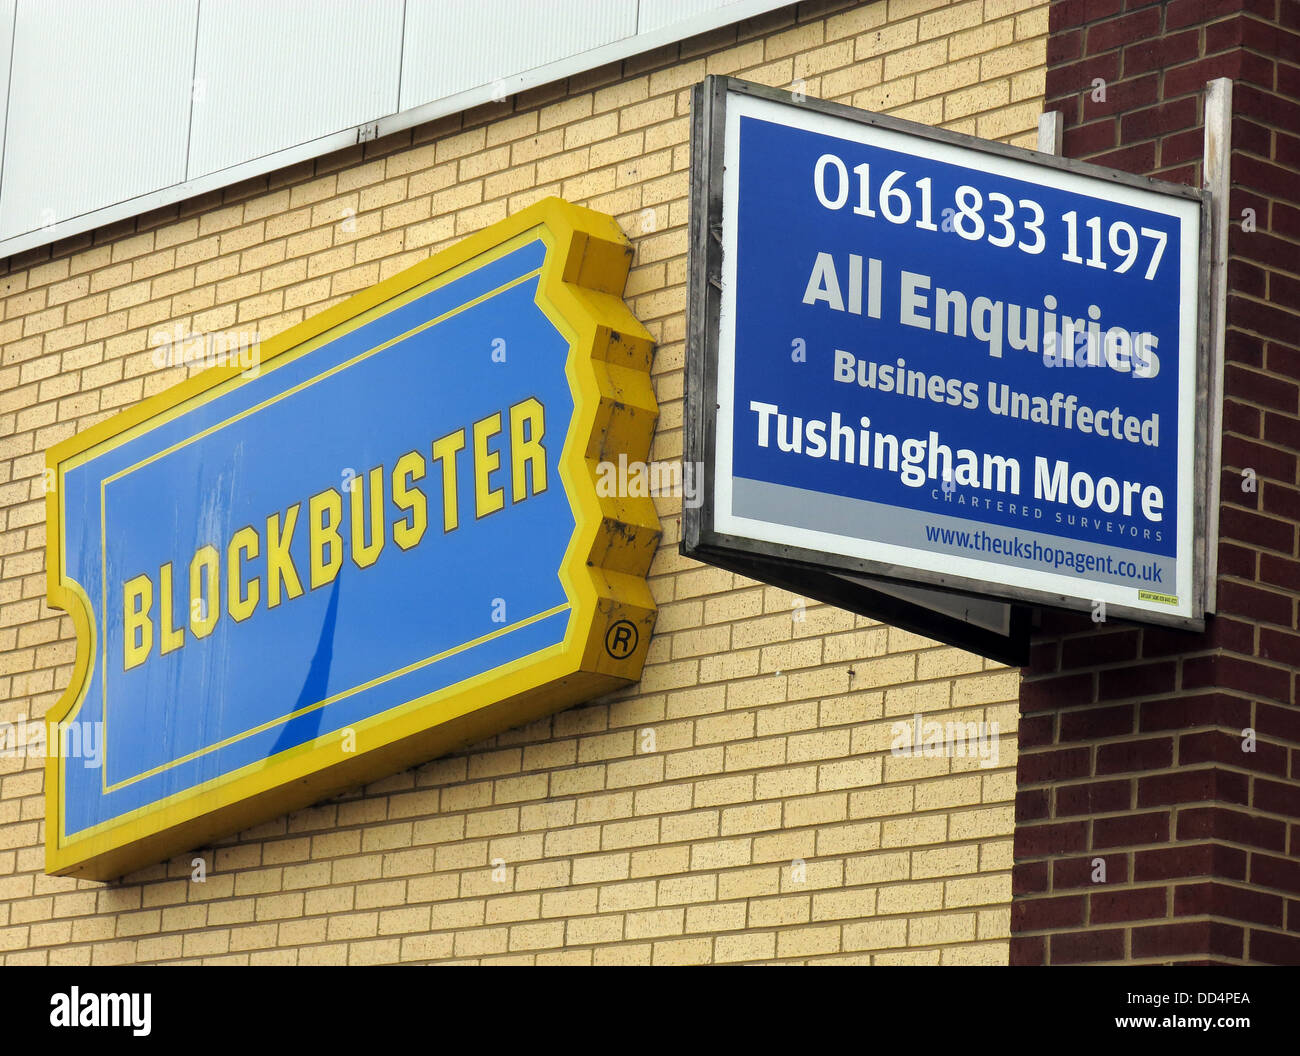 Closure of Blockbuster Video, Warrington Town Centre, Cheshire, North West England, WA1 - Stock Image